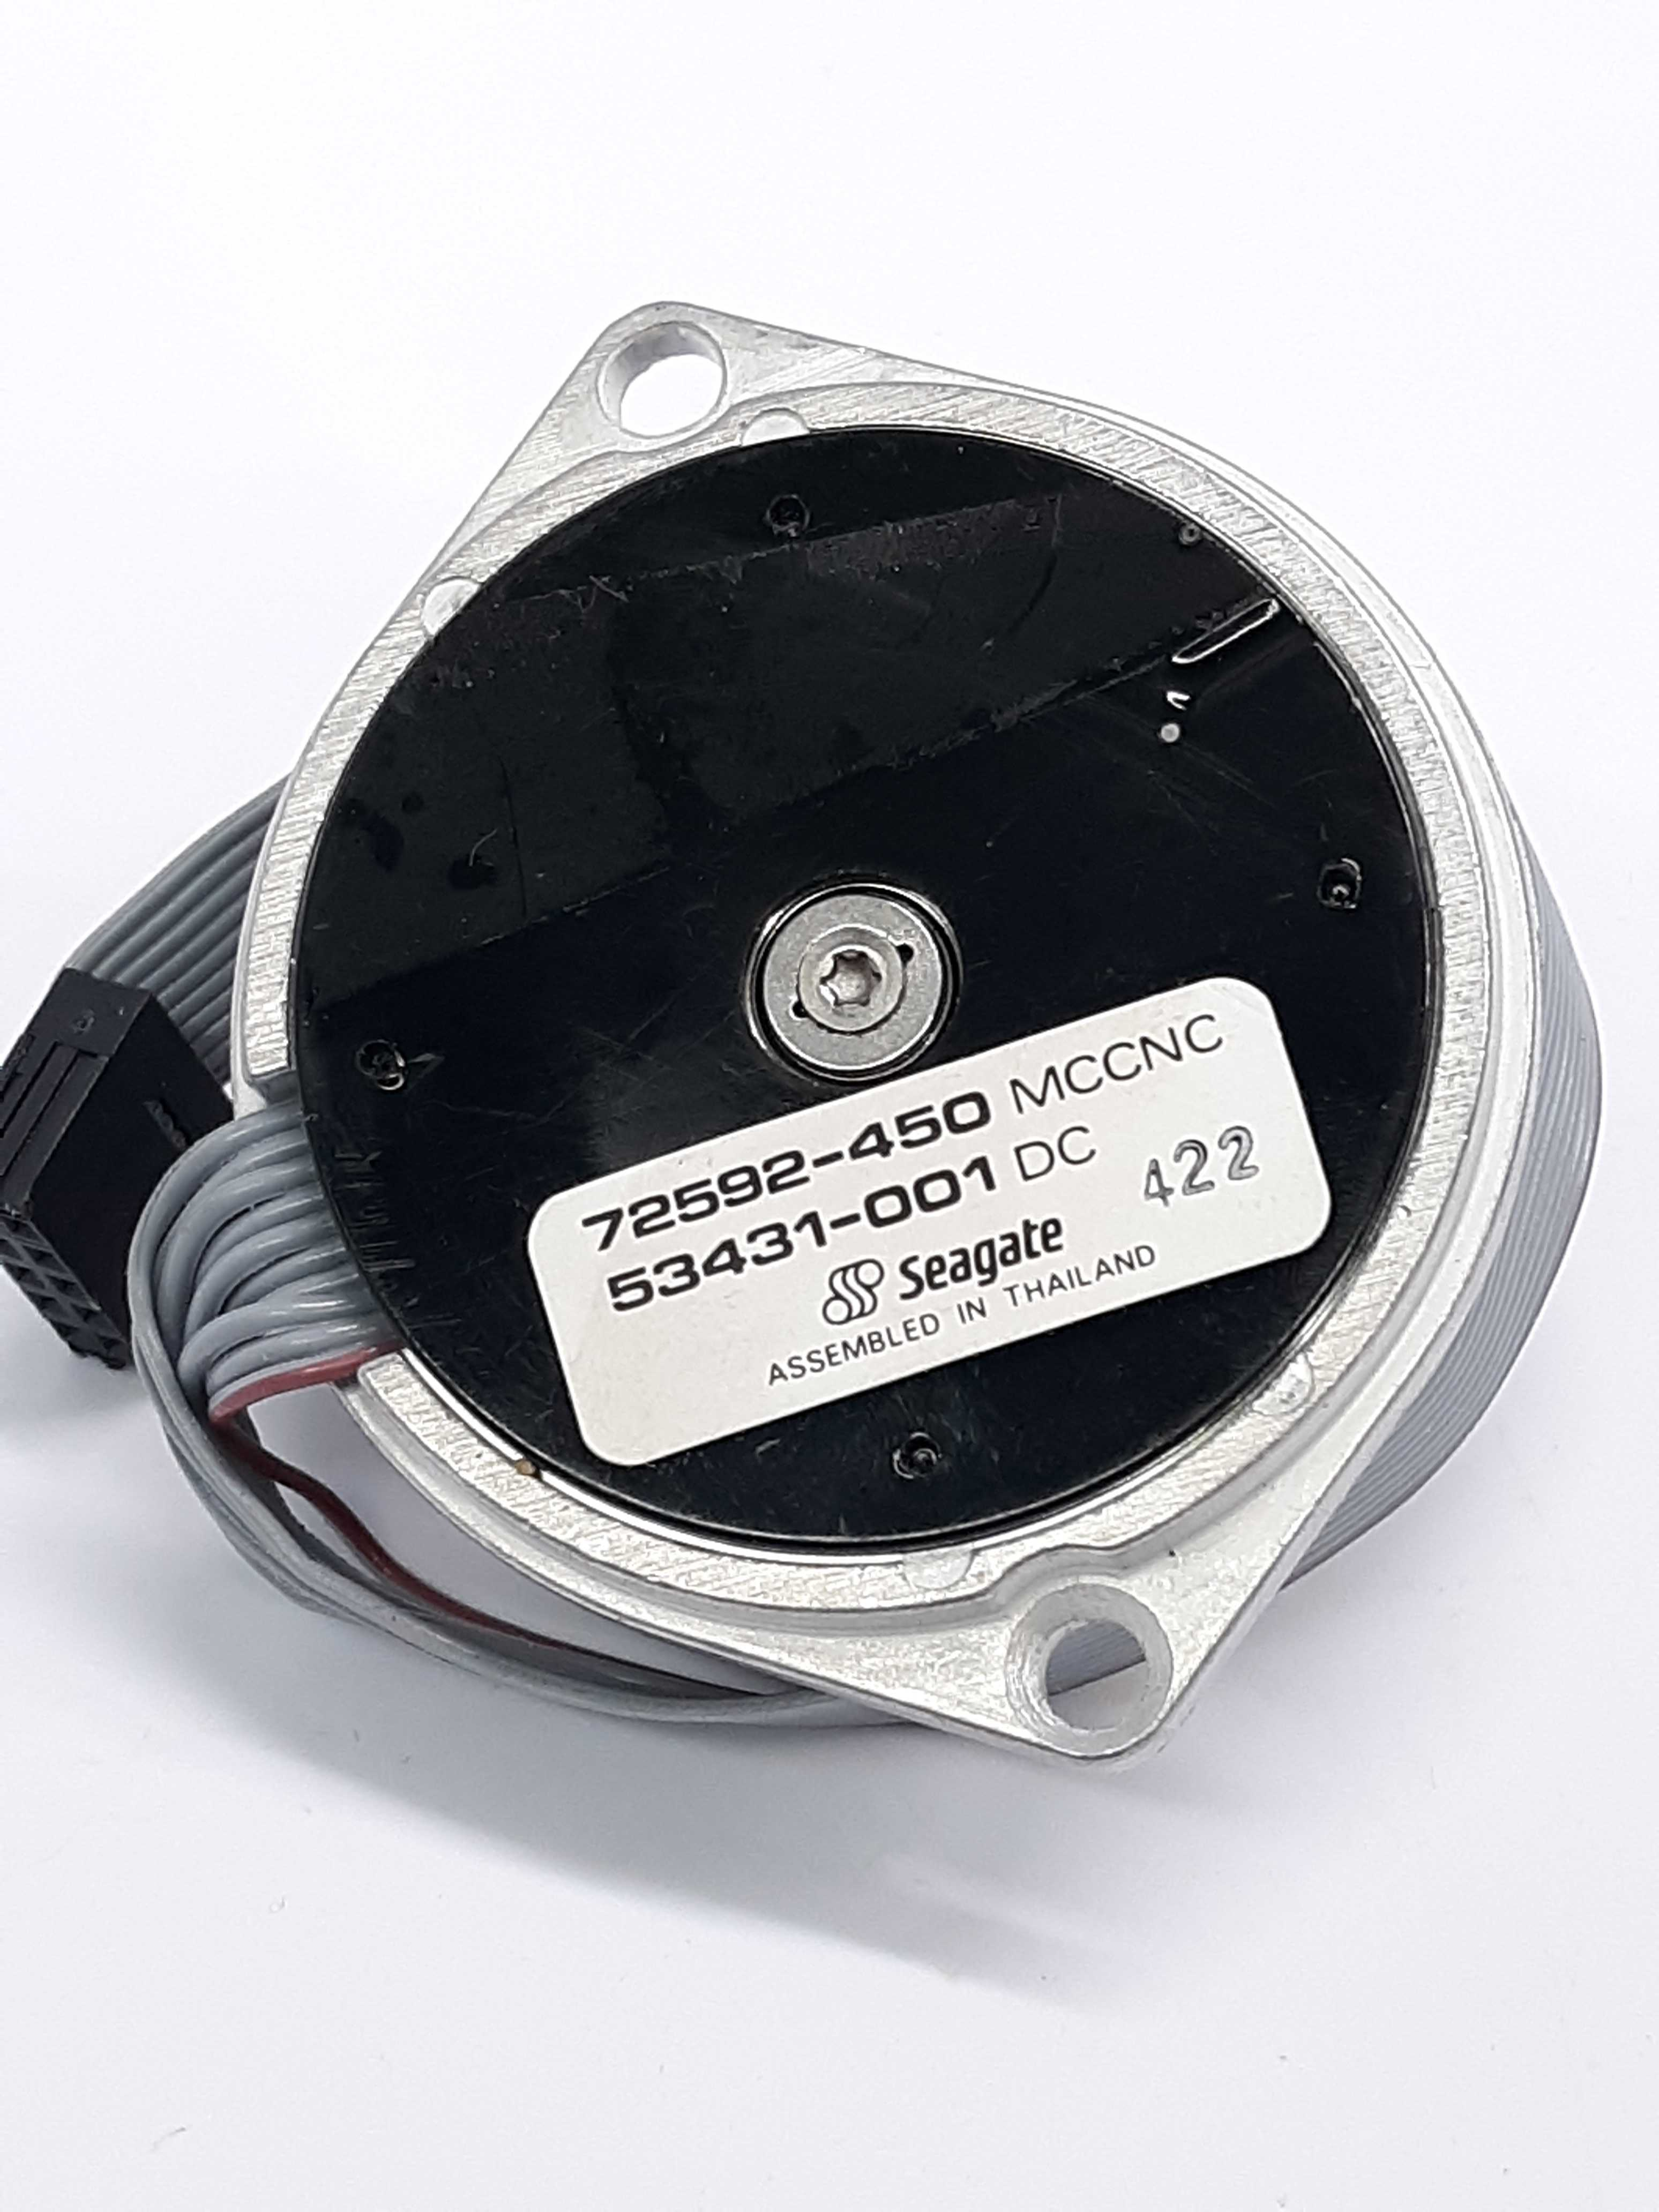 Seagate 53431-001 DC Stepping Stepper Drive Motor Model 72592-450 MCCNC